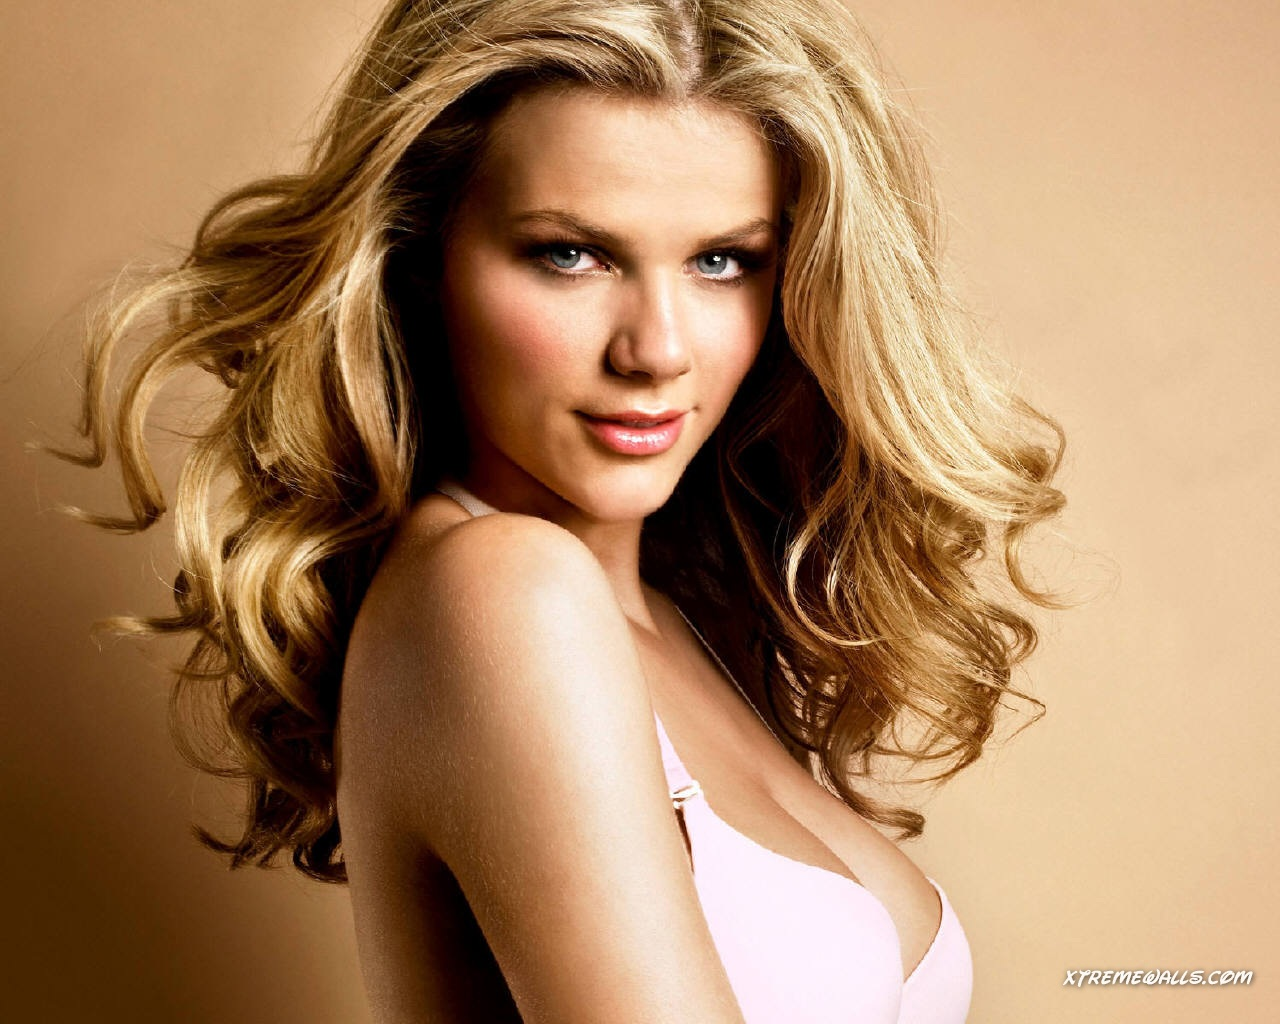 Brooklyn Decker Wiki & Photos